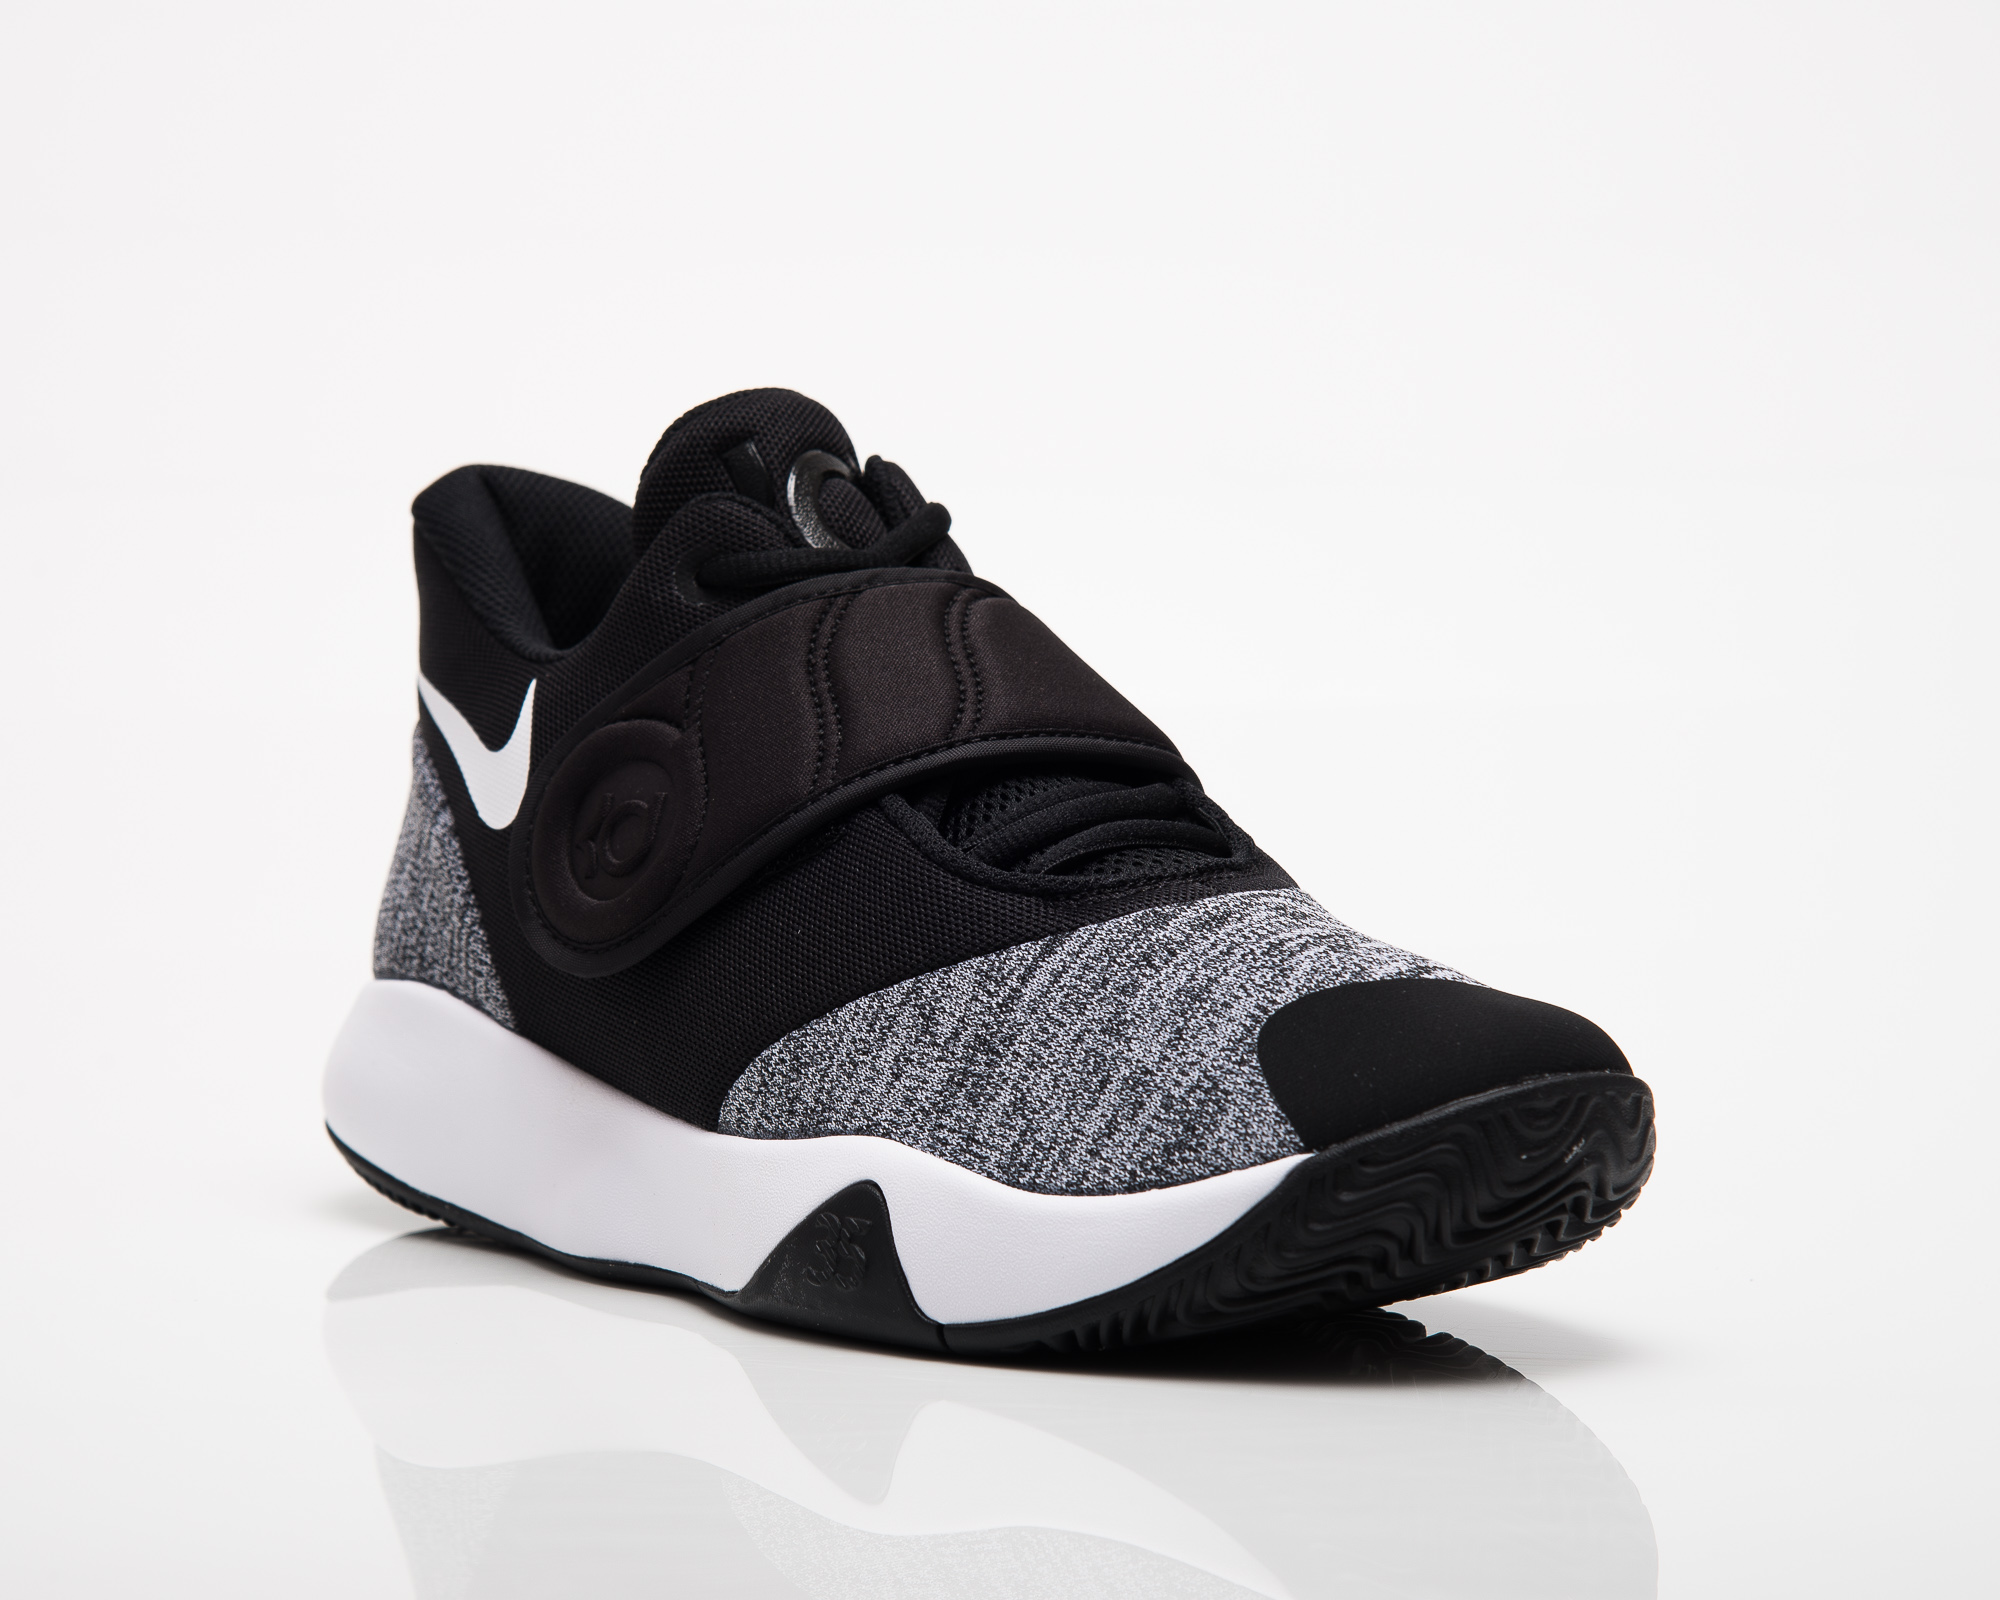 cfa90687f142 Nike KD Trey 5 VI Basketball Shoes (Size 40.5) - BASKETBALL SHOES NIKE  Basketball Shoes - Superfanas.lt